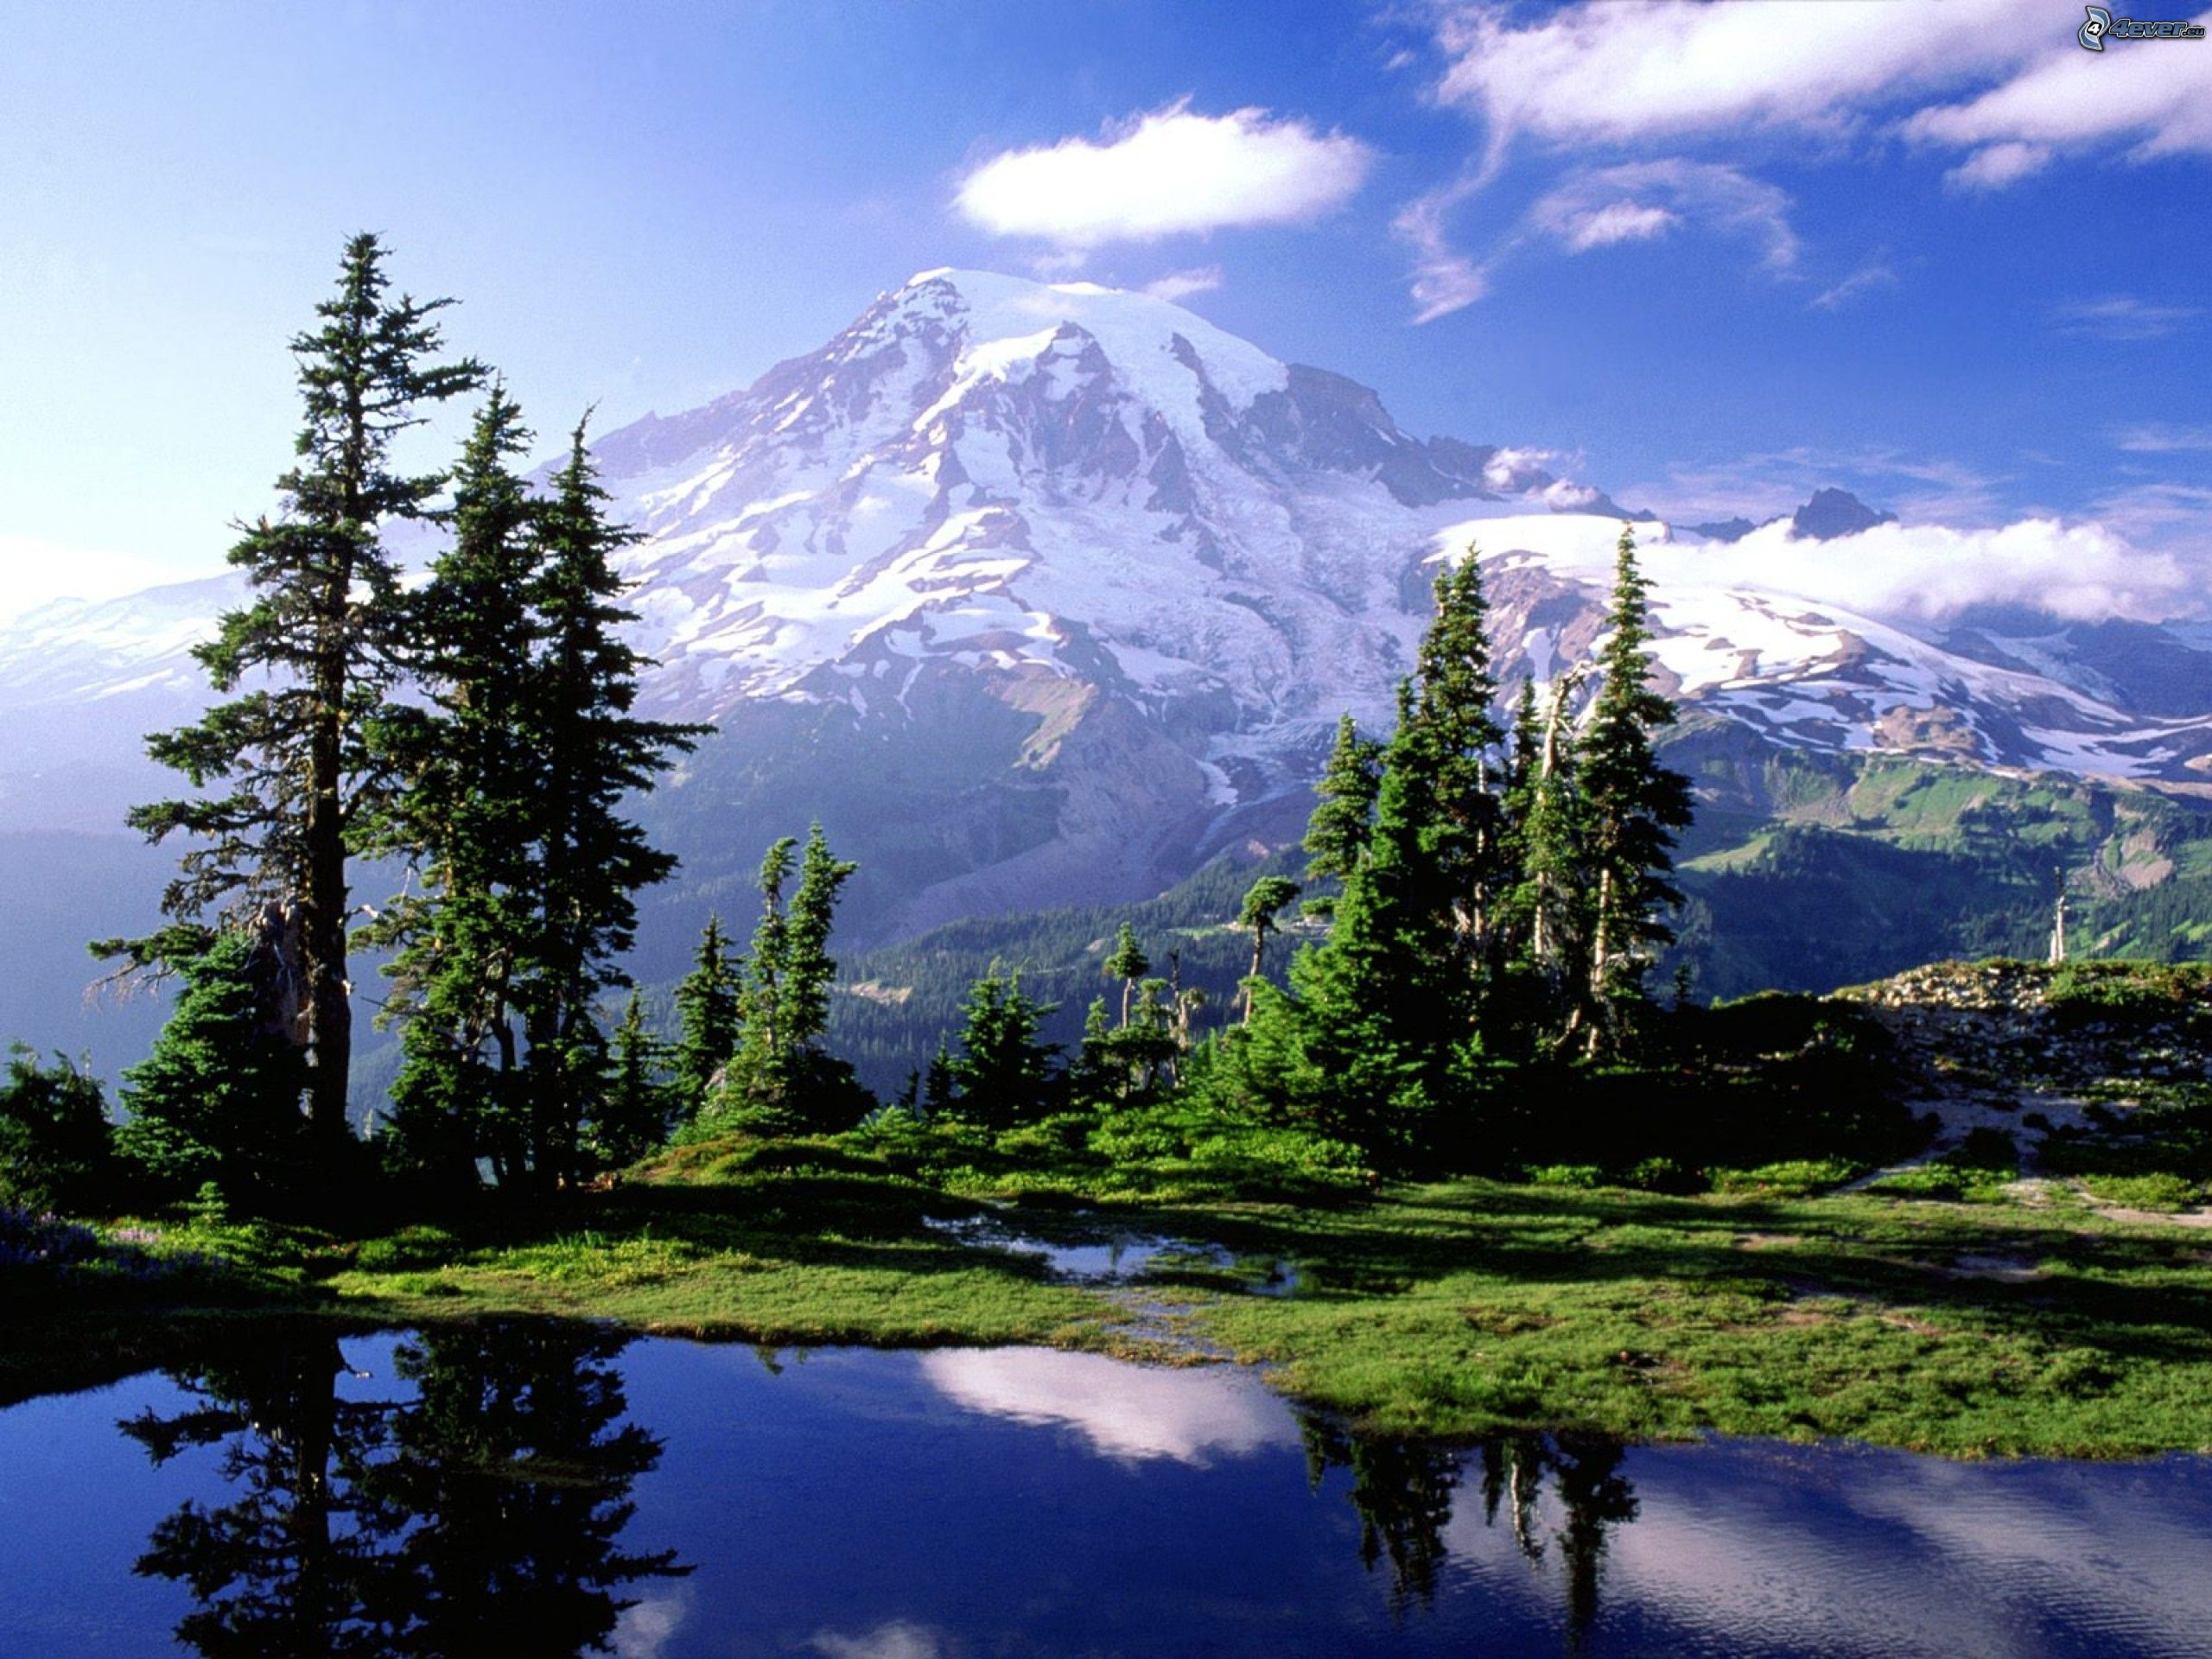 mountains trees lake reflection mount rainier - Google Search